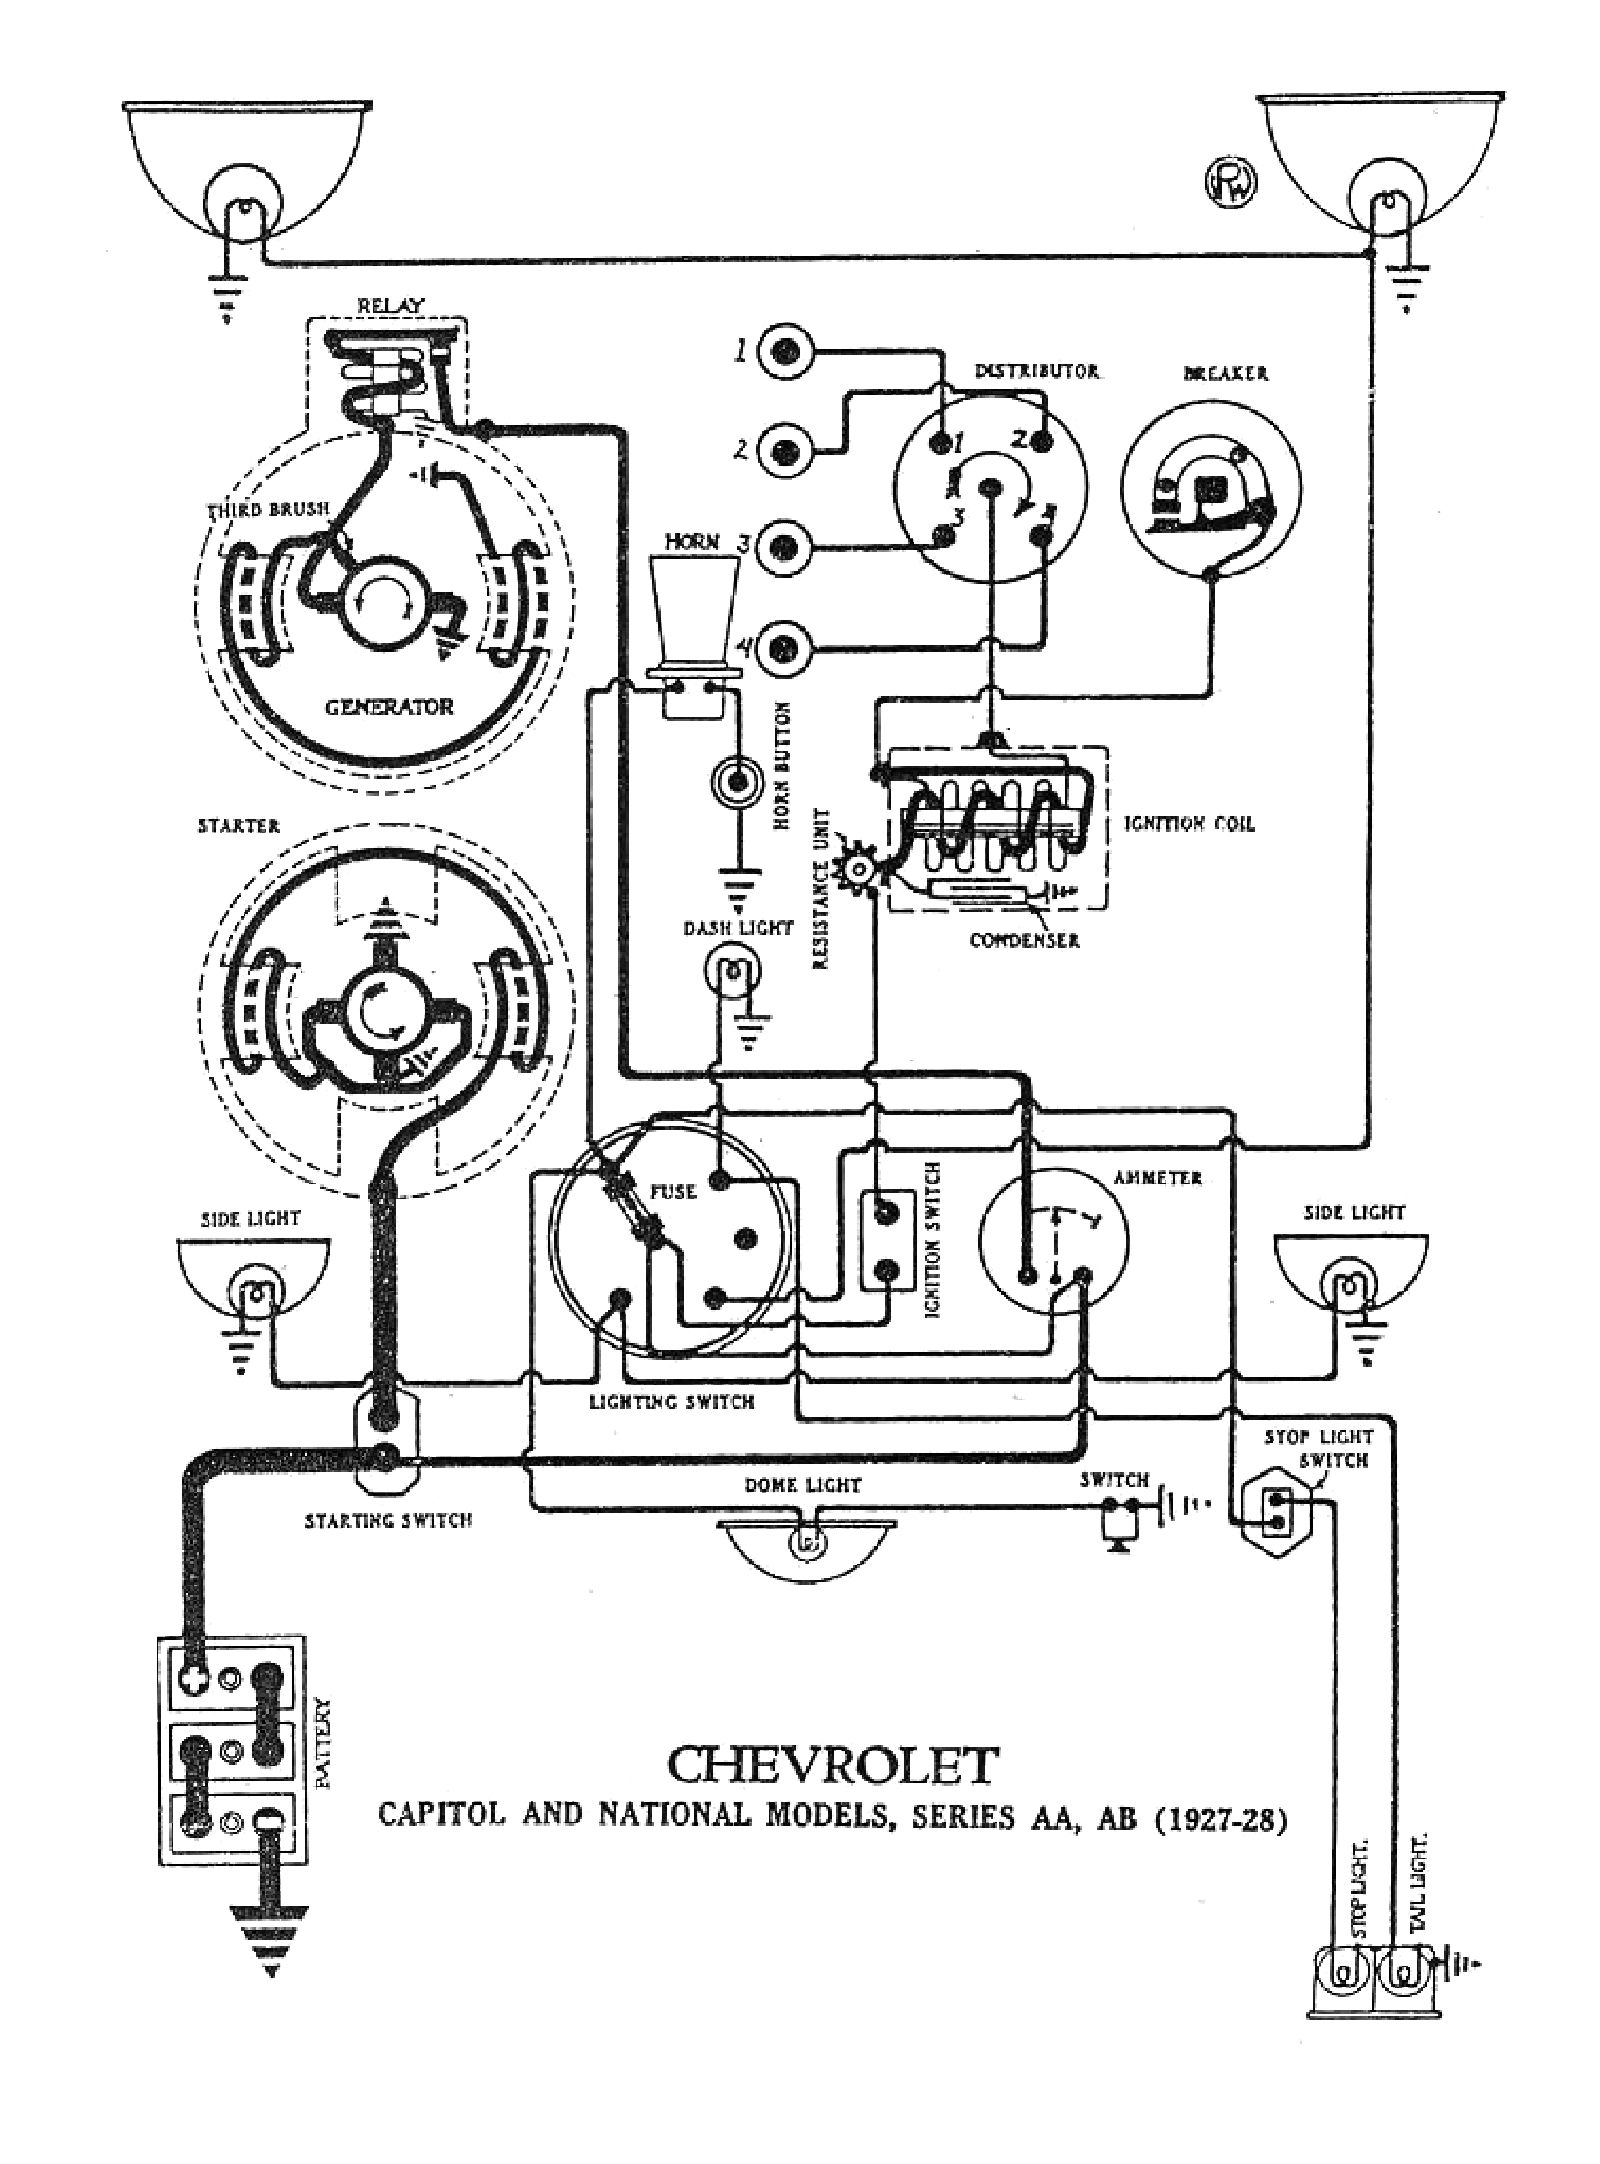 hight resolution of chevy wiring diagrams dodge stratus electrical diagrams 1930 dodge wiring diagram